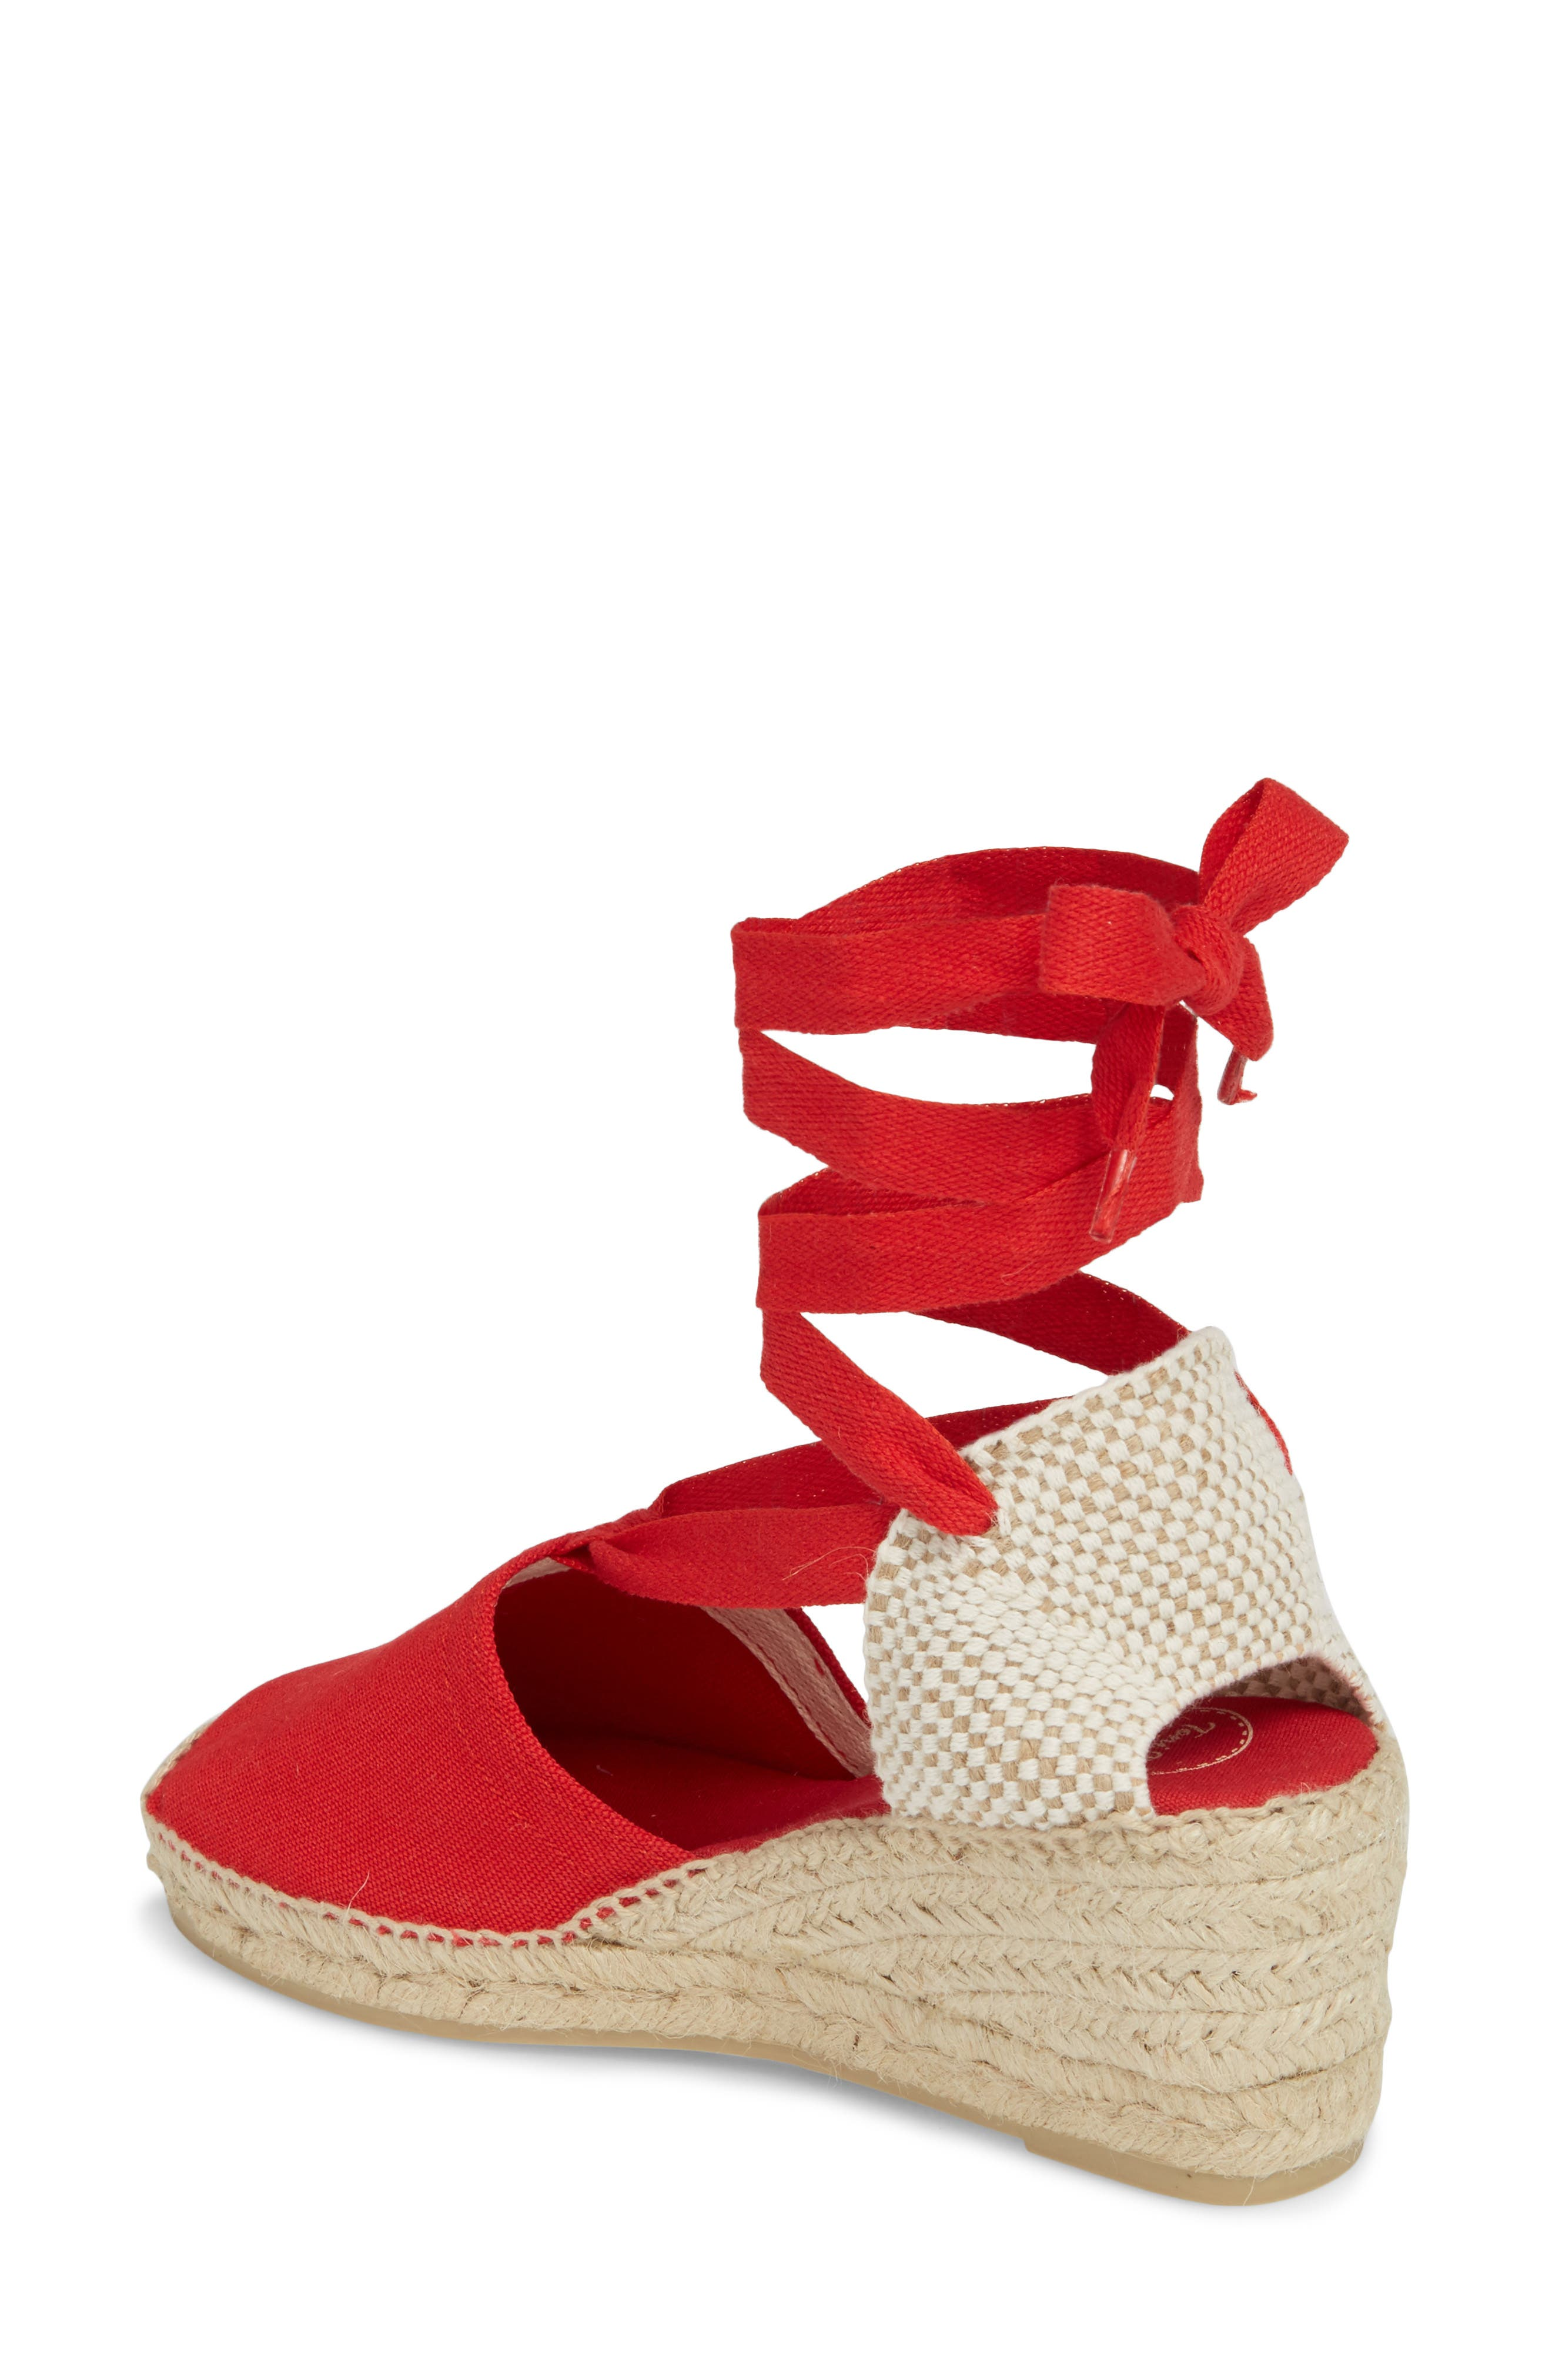 Valencia Wraparound Espadrille Wedge,                             Alternate thumbnail 2, color,                             Red Fabric